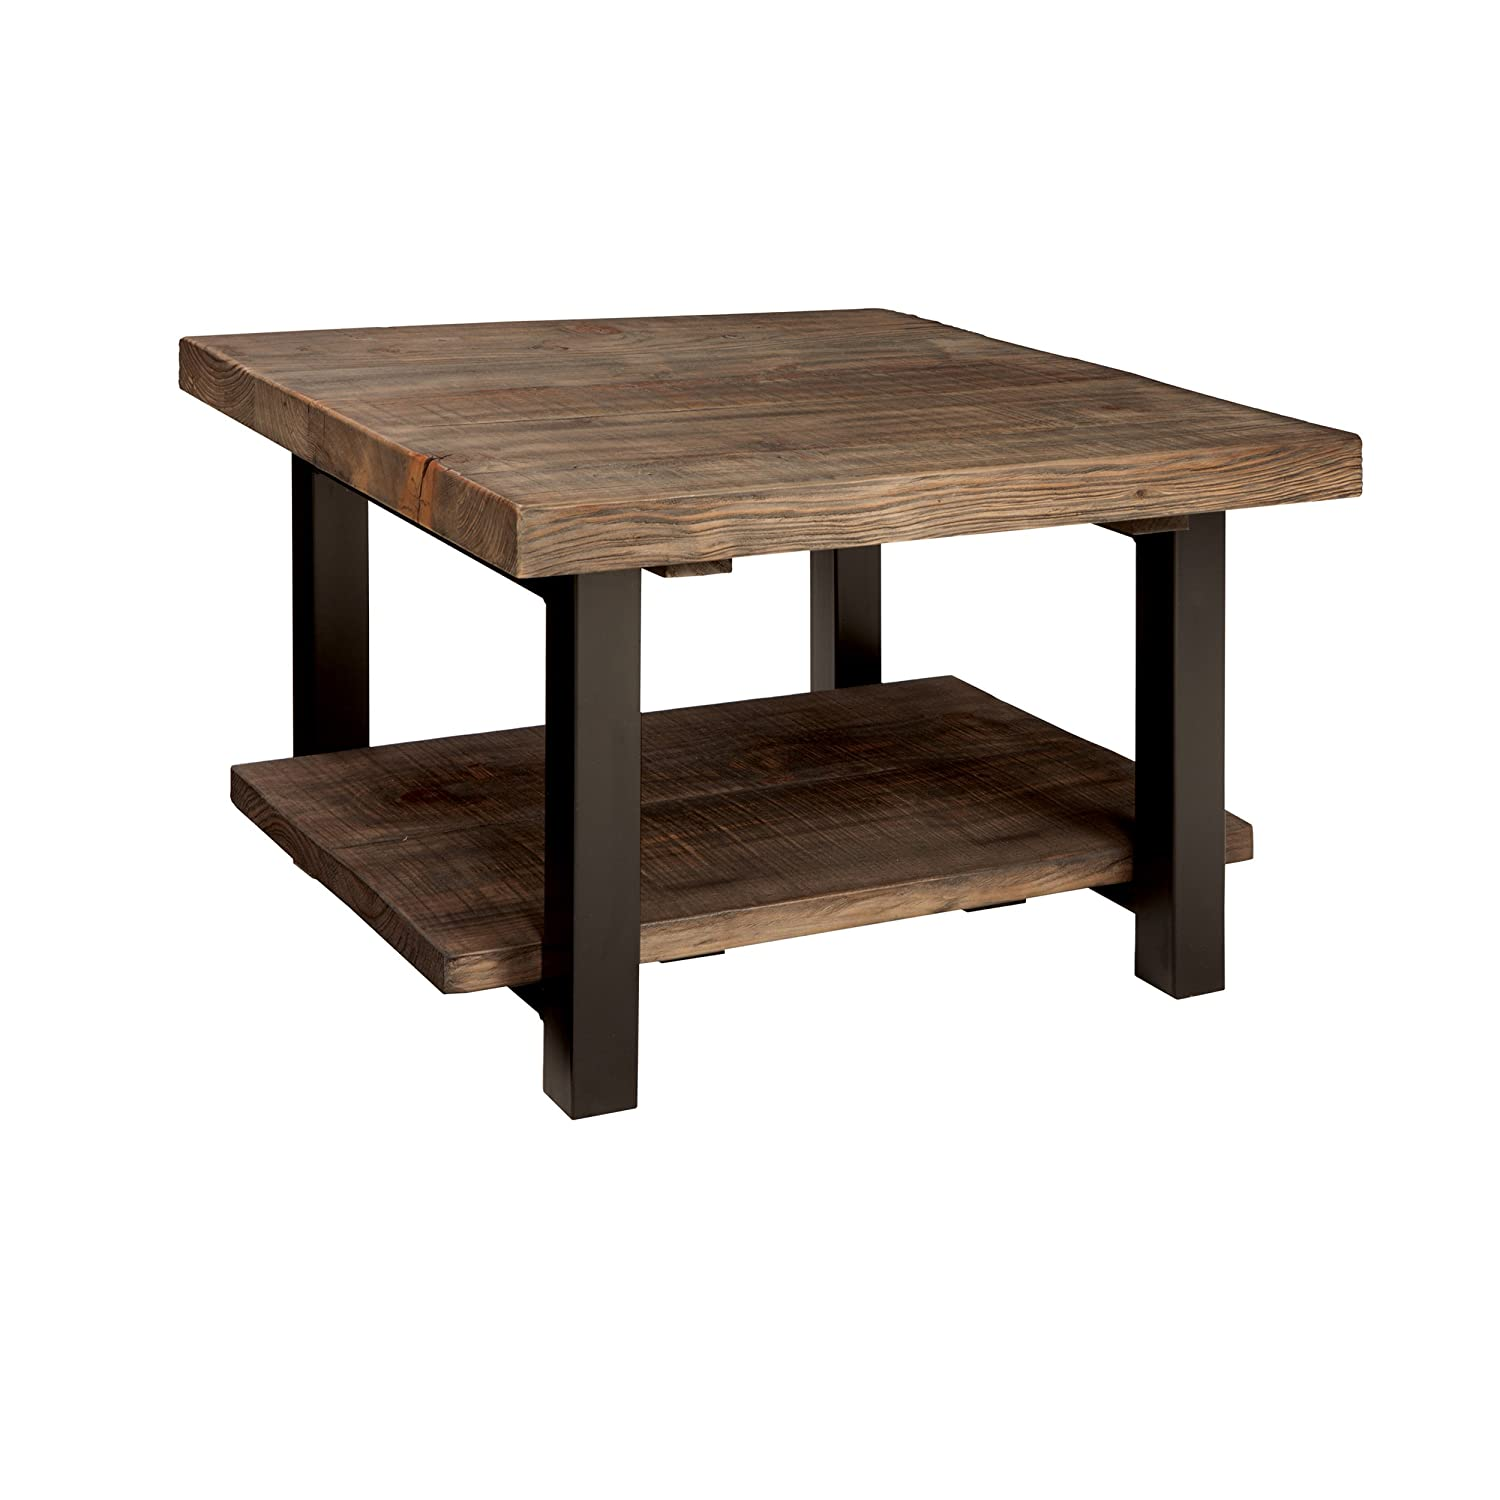 "Alaterre AMBA1320 AZMBA1320 Sonoma Rustic Natural Cube Coffee Table, Brown, 27"","